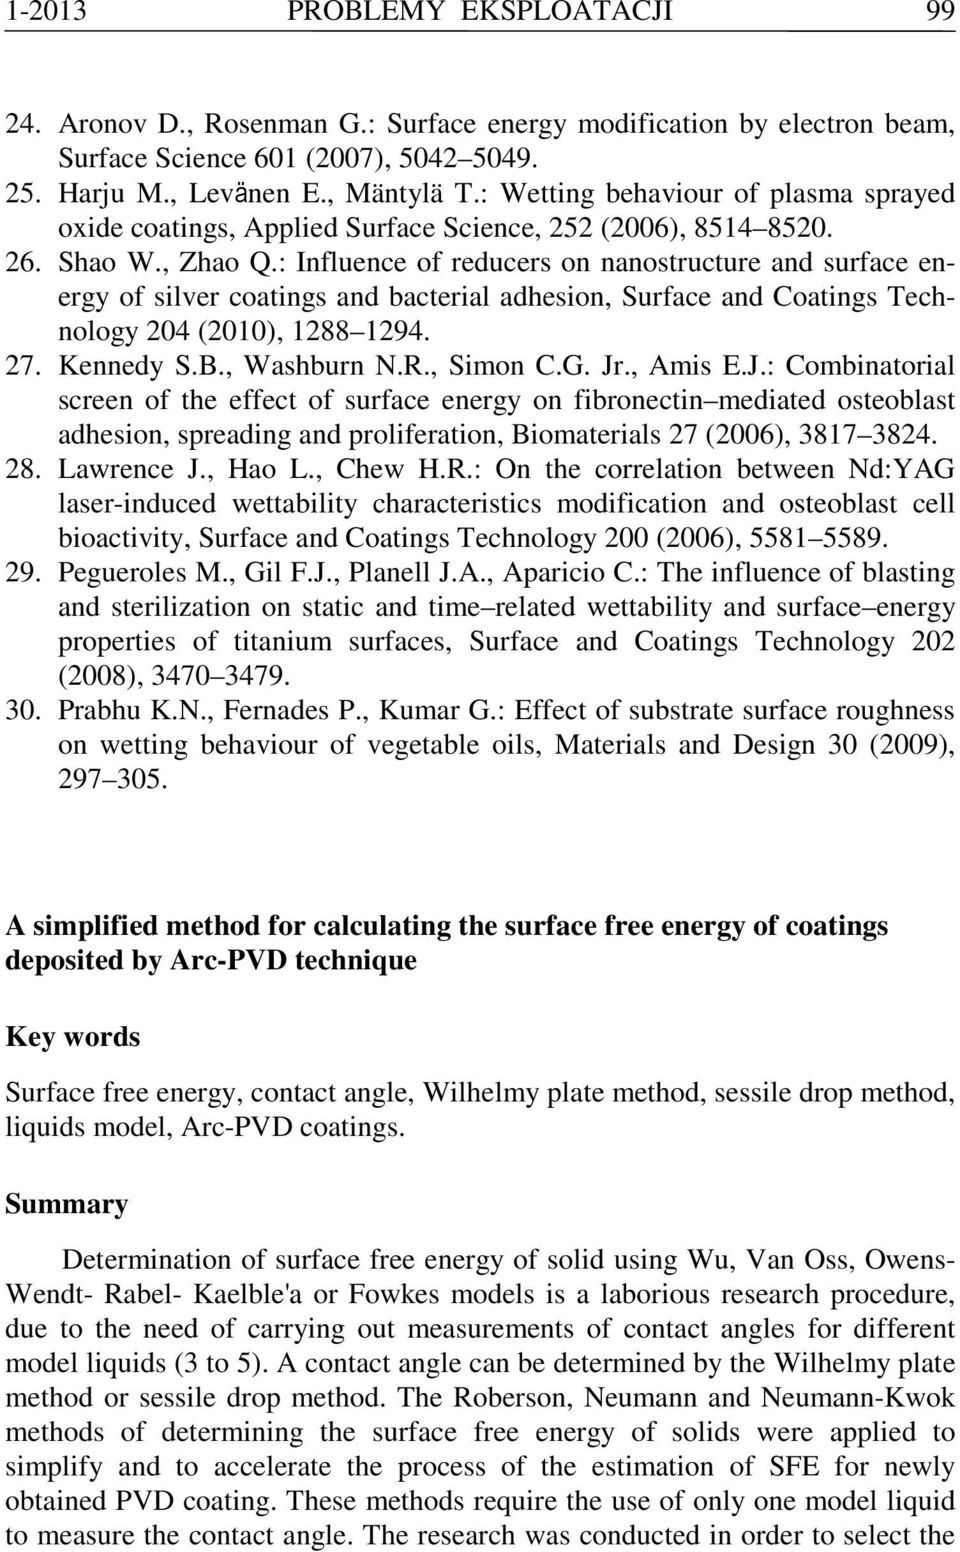 : Infuence of reducer on nanotructure and urface energy of iver coating and bacteria adheion, urface and Coating Technoogy 204 (2010), 1288 1294. 27. Kennedy.B., Wahburn N.R., imon C.G. Jr